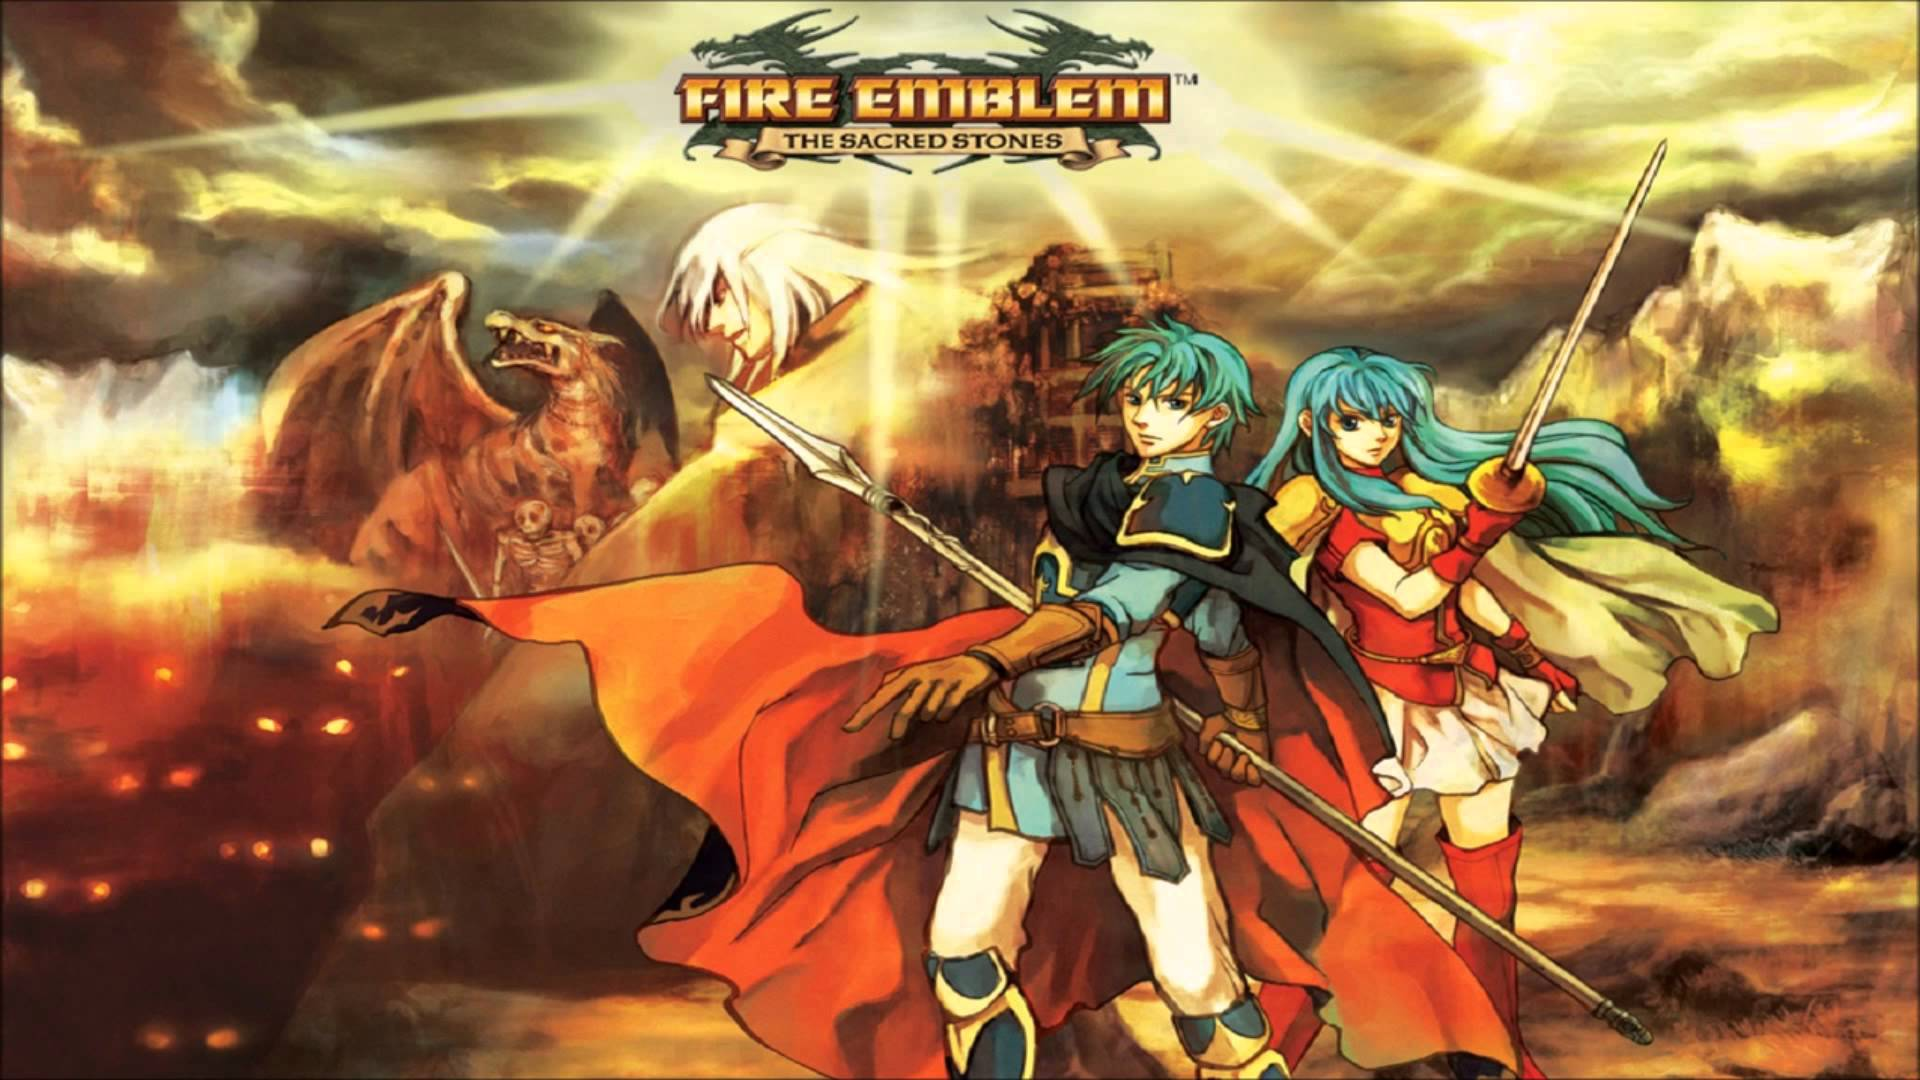 1920x1080 > Fire Emblem: The Sacred Stones Wallpapers